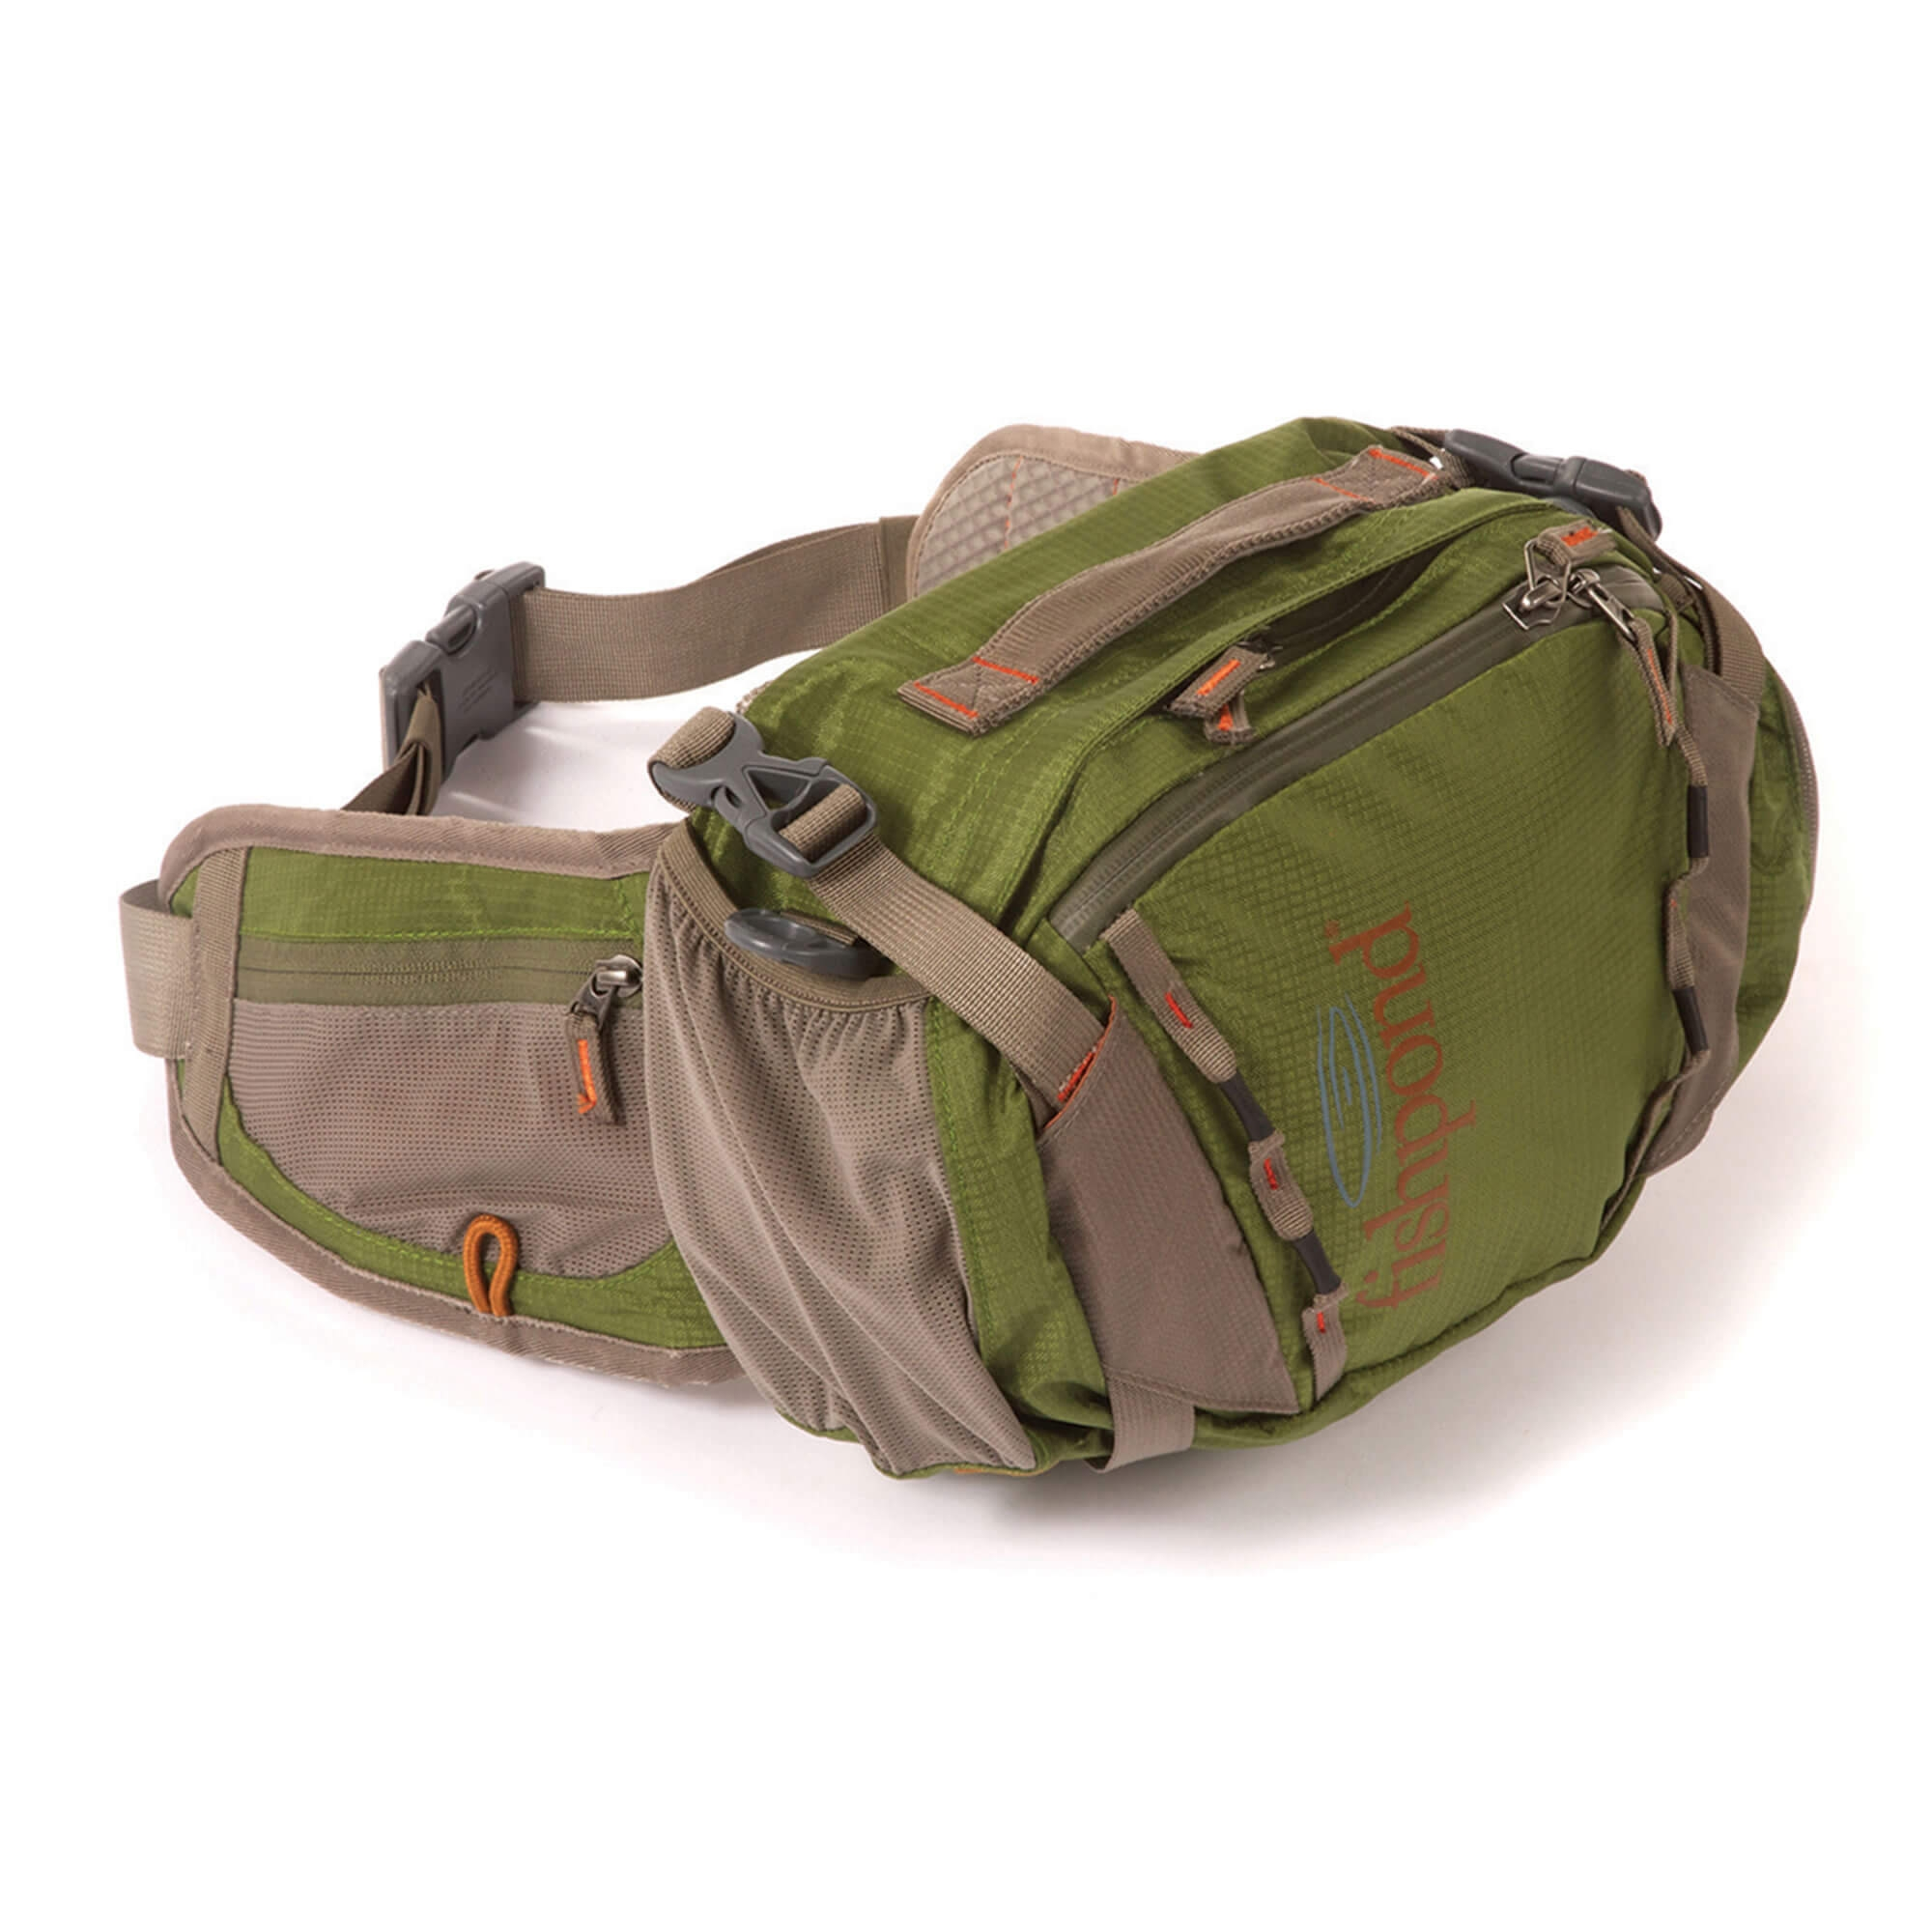 Encampment Lumbar Pack